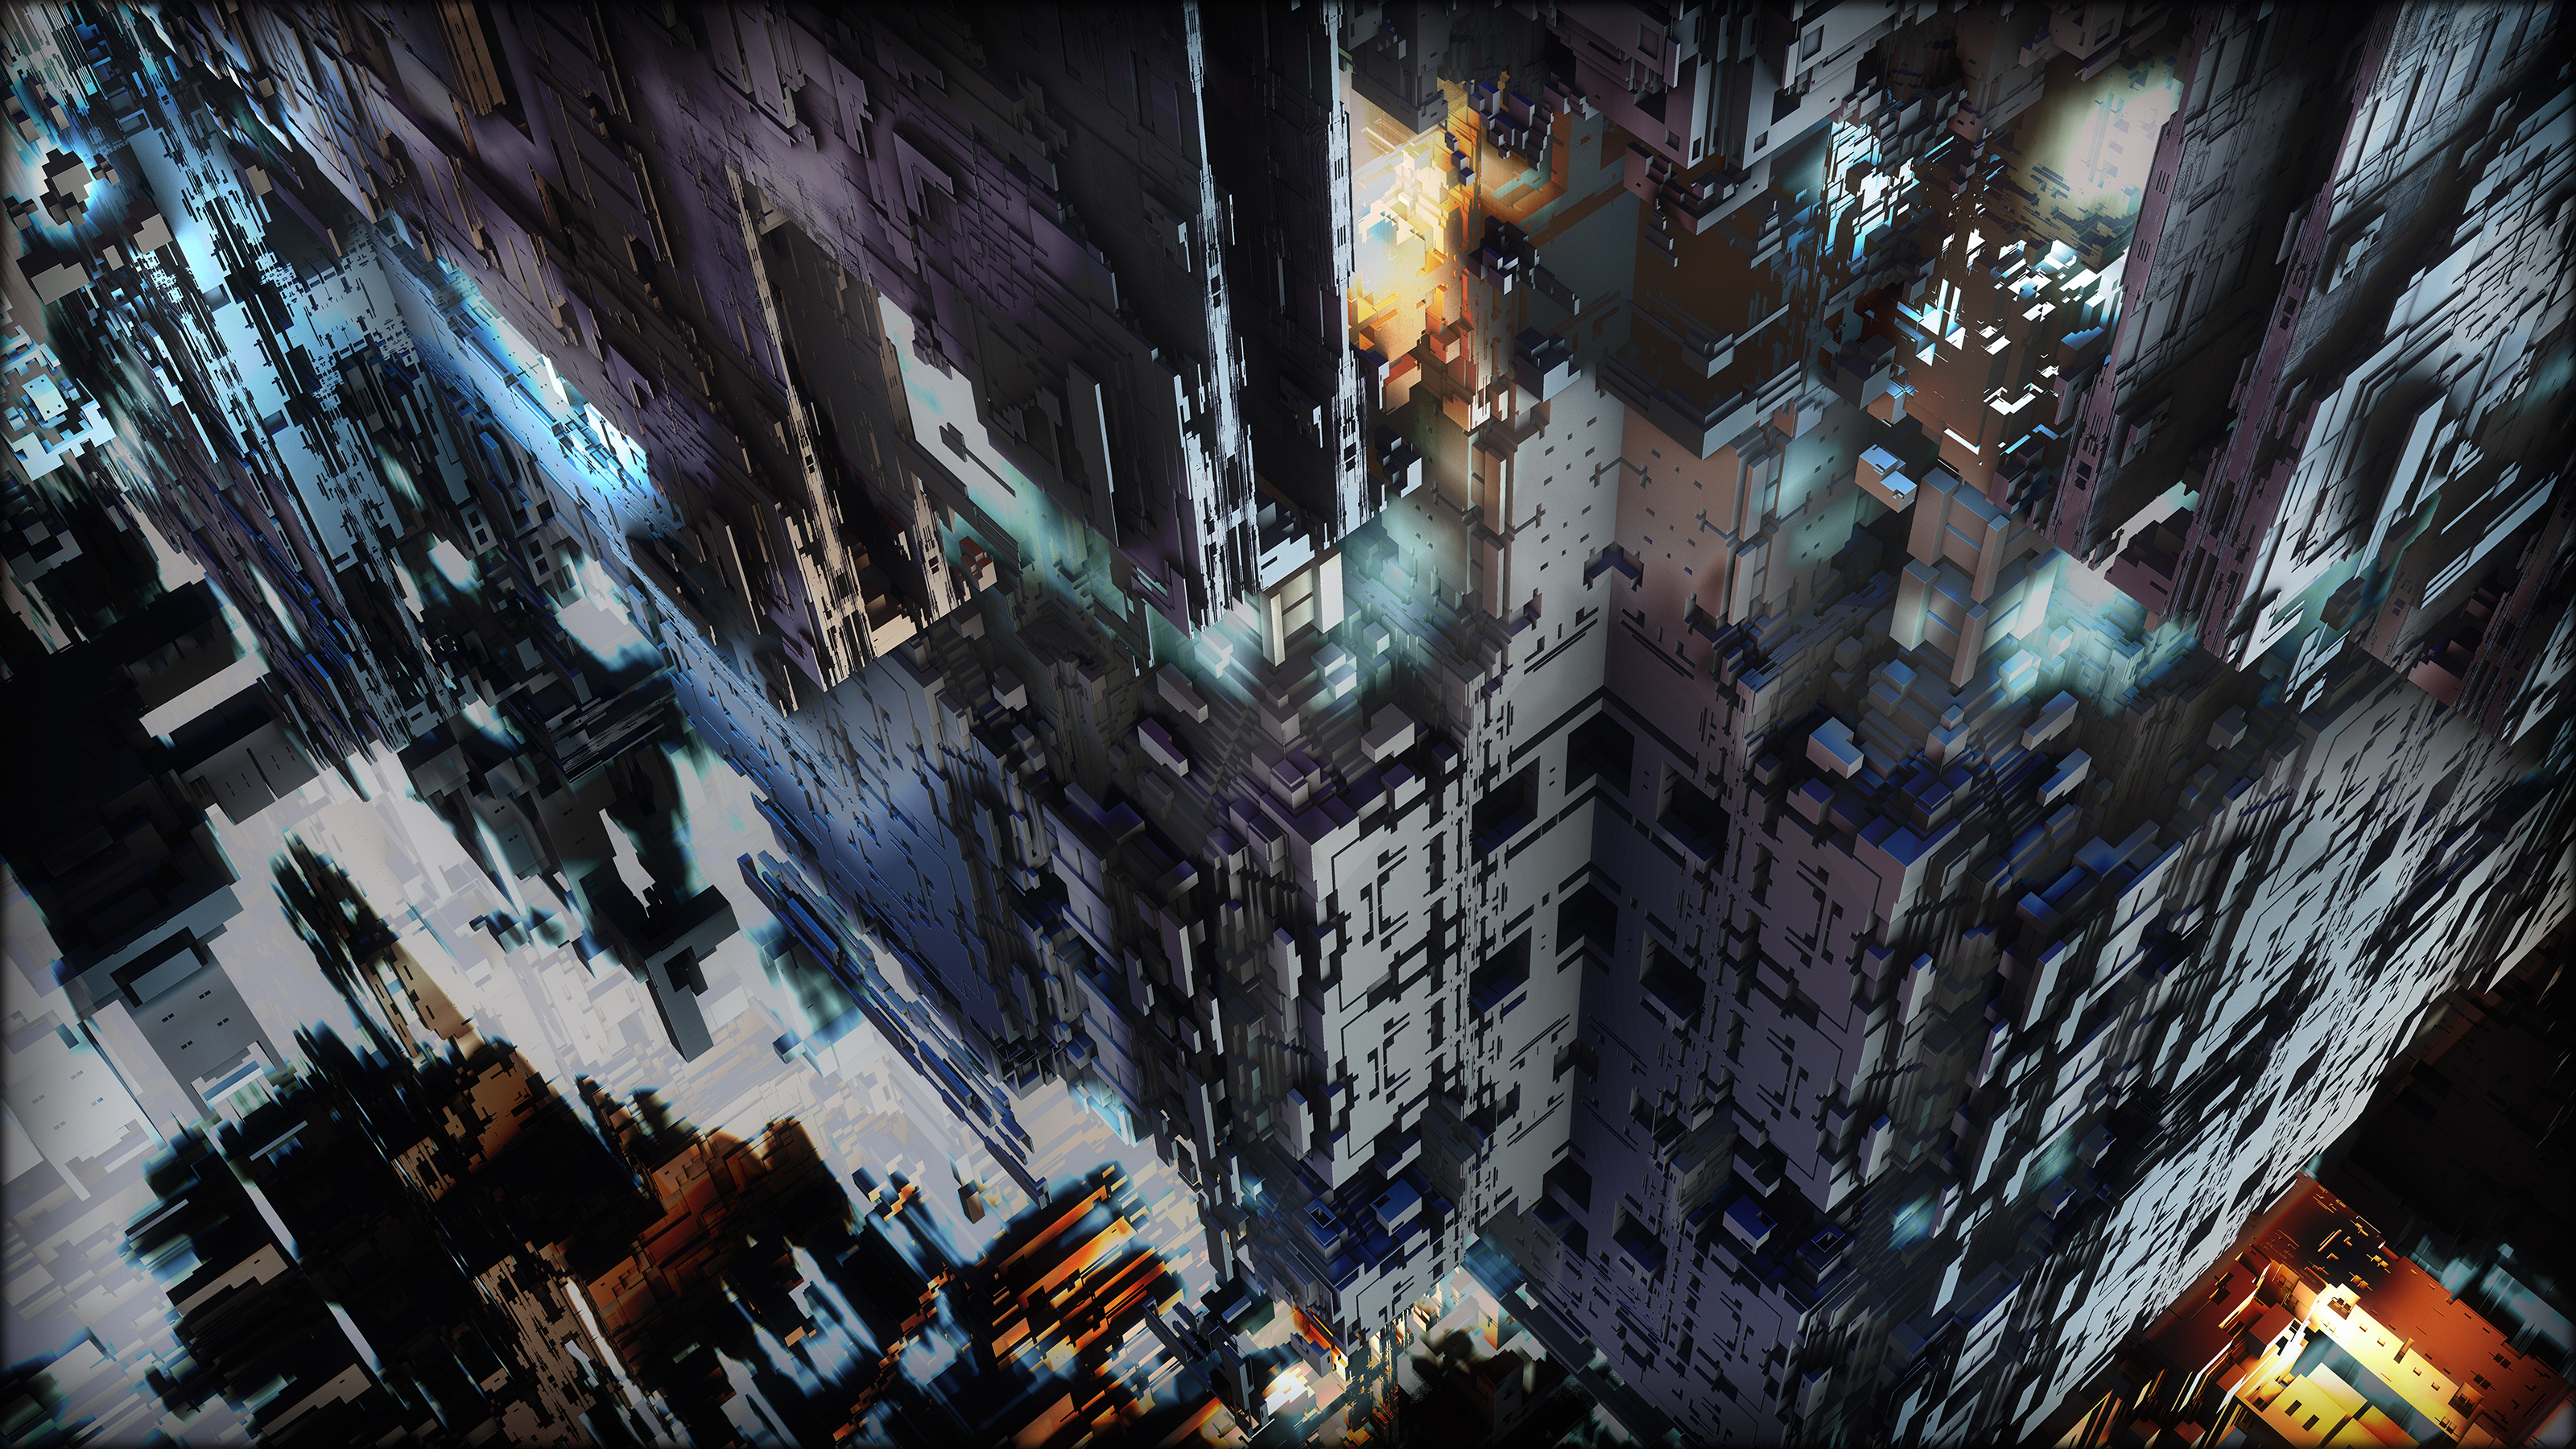 Harsh City Winter by axolotl7